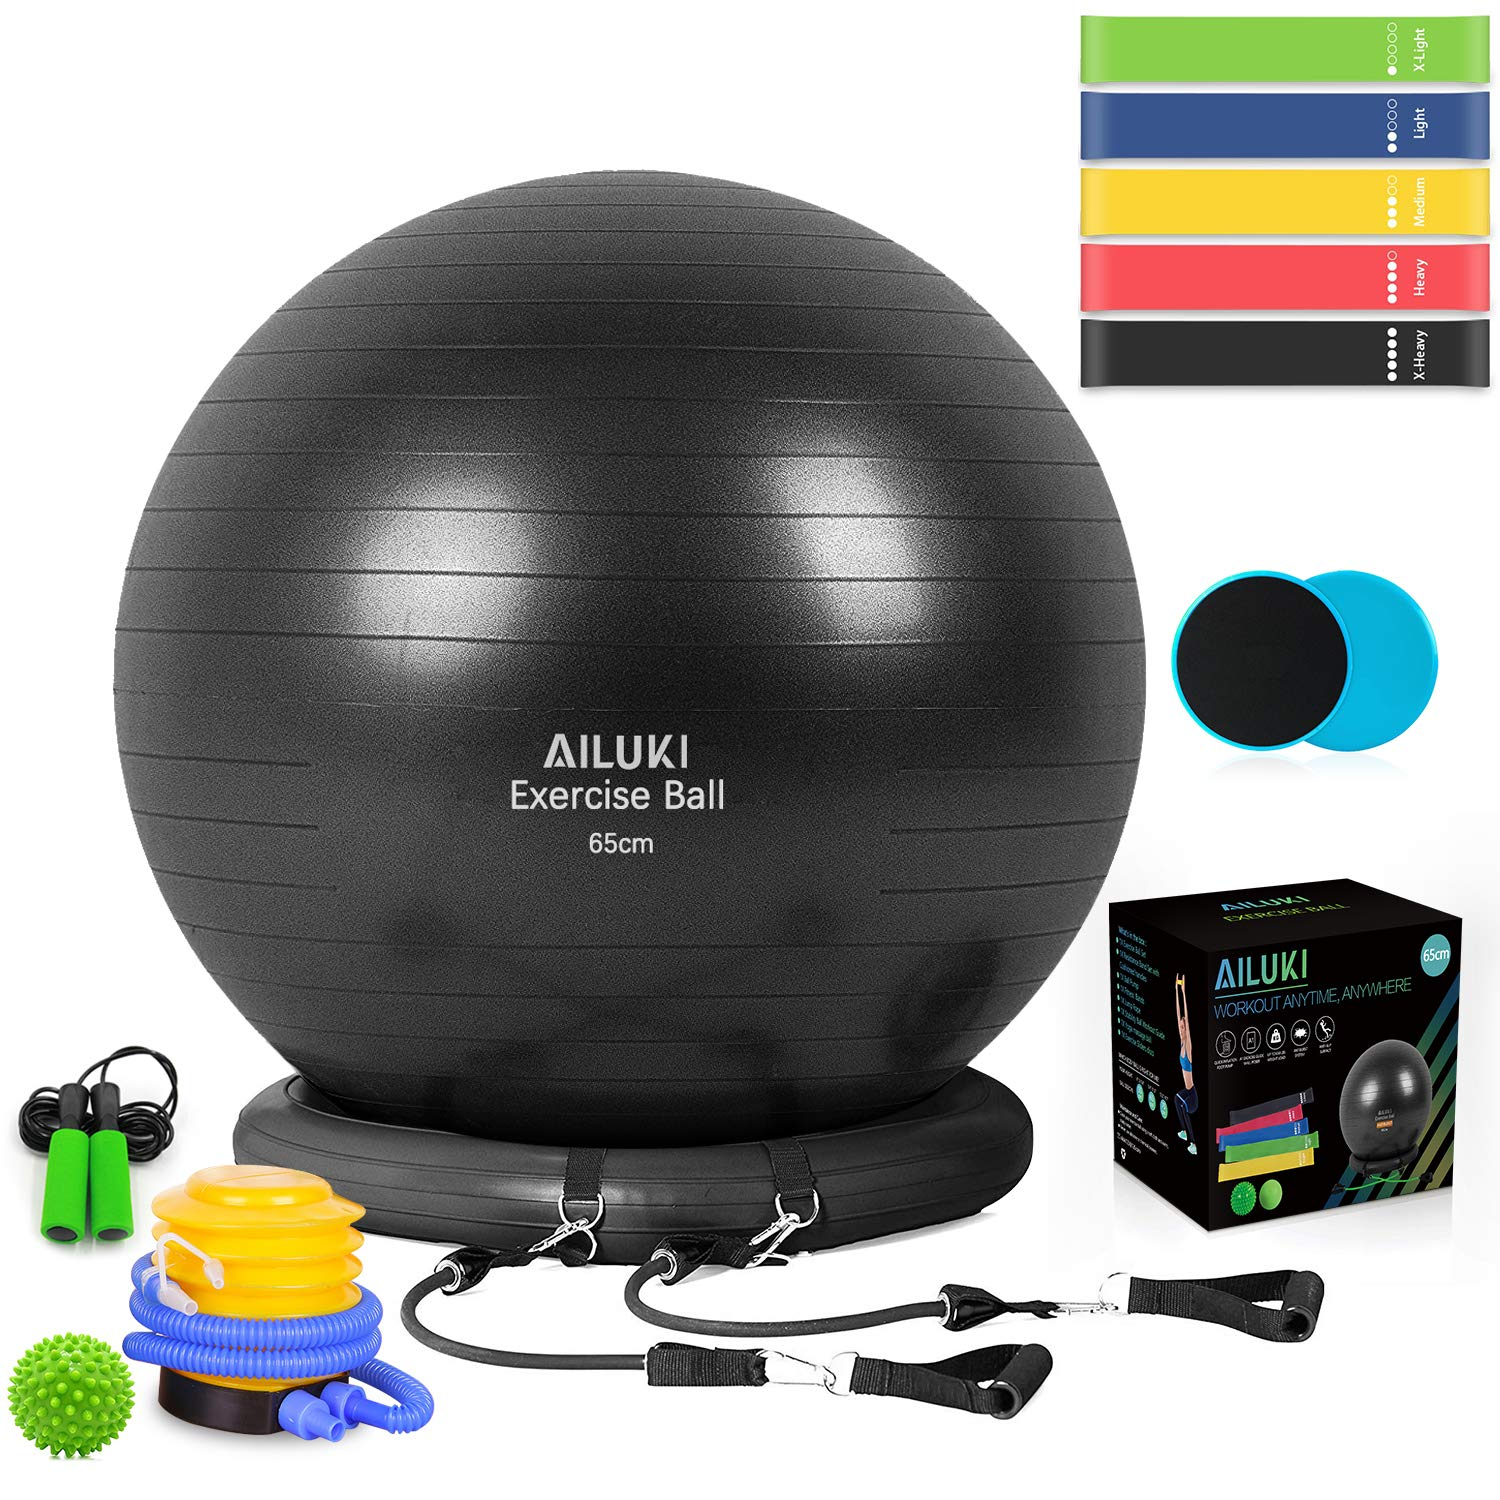 AILUKI Yoga Ball, Exercise Ball Fitness Balls Stability Ball Anti-Slip & Anti- Burst for Yoga,Pilates, Birthing, Balance & Fitness with Workout Guide & Quick Pump by AILUKI